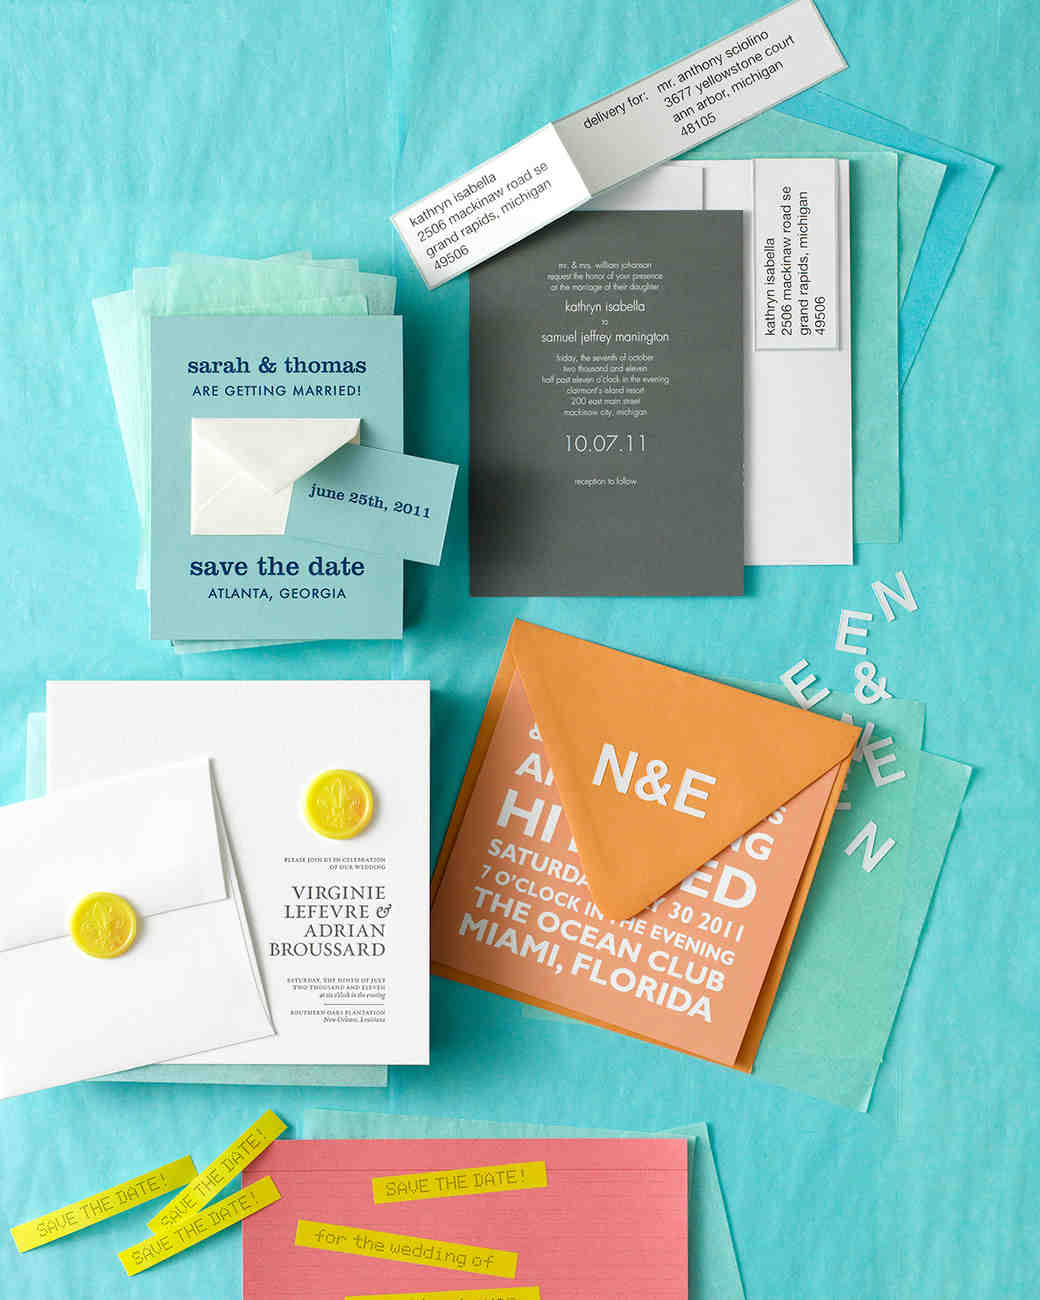 diy-sources-customstationery-wd107185stickit1lrk-1014.jpg